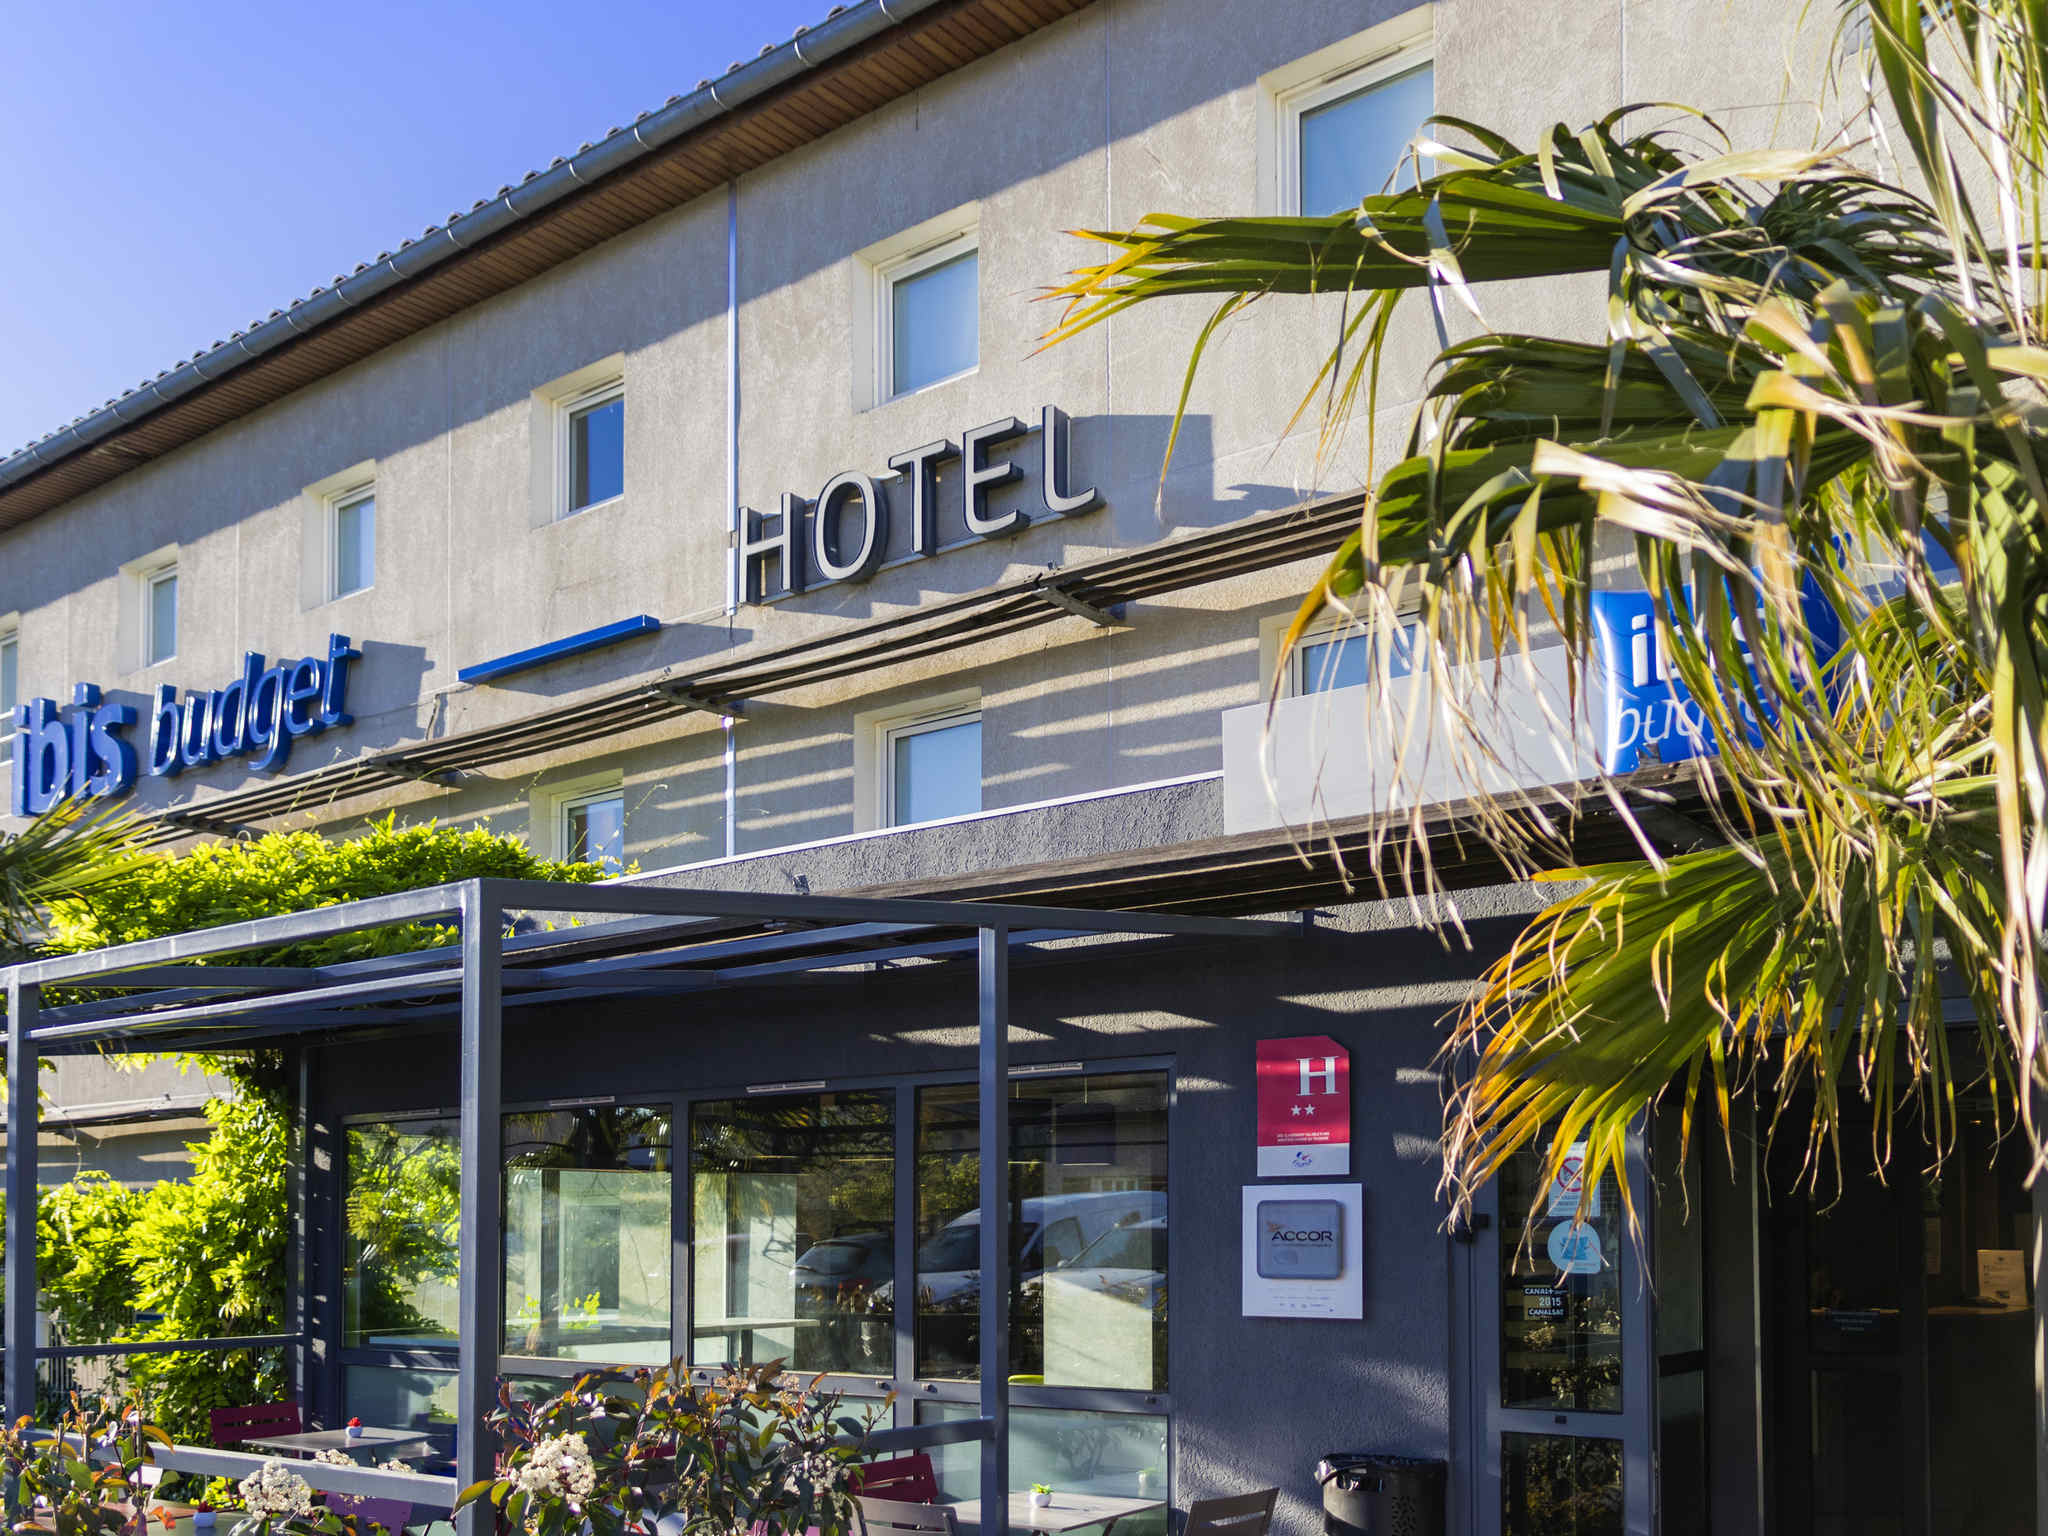 Hotel in carcassonne ibis budget carcassonne la cit for Hotels carcassonne